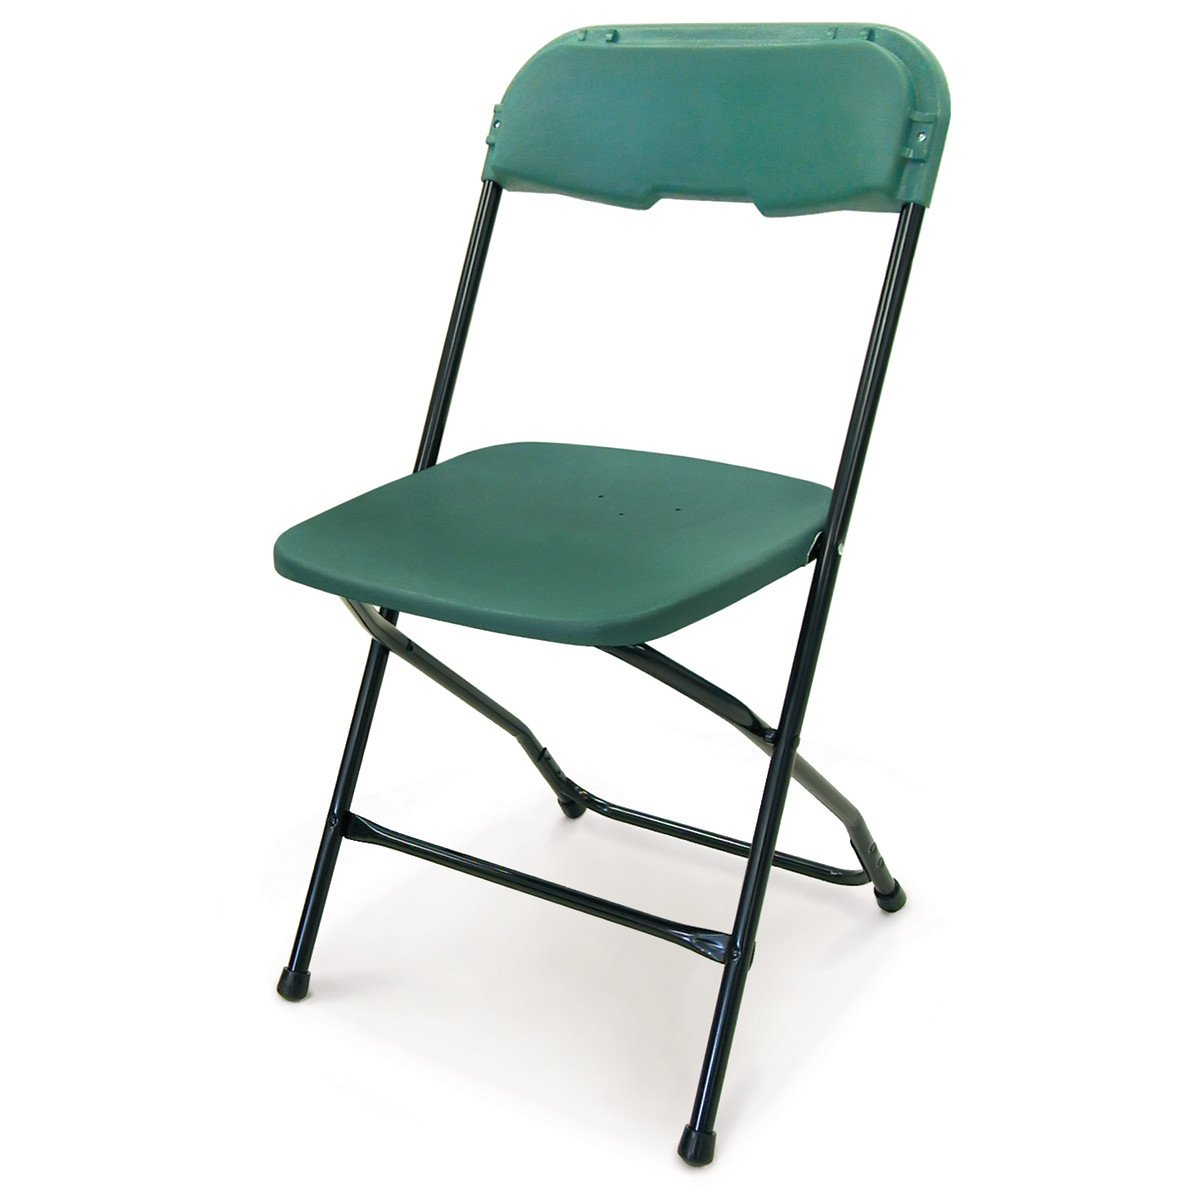 McCourt 21110 Series 5 Dining Height Stackable Folding Chair, Black Frame, Single, Green Seat/Back